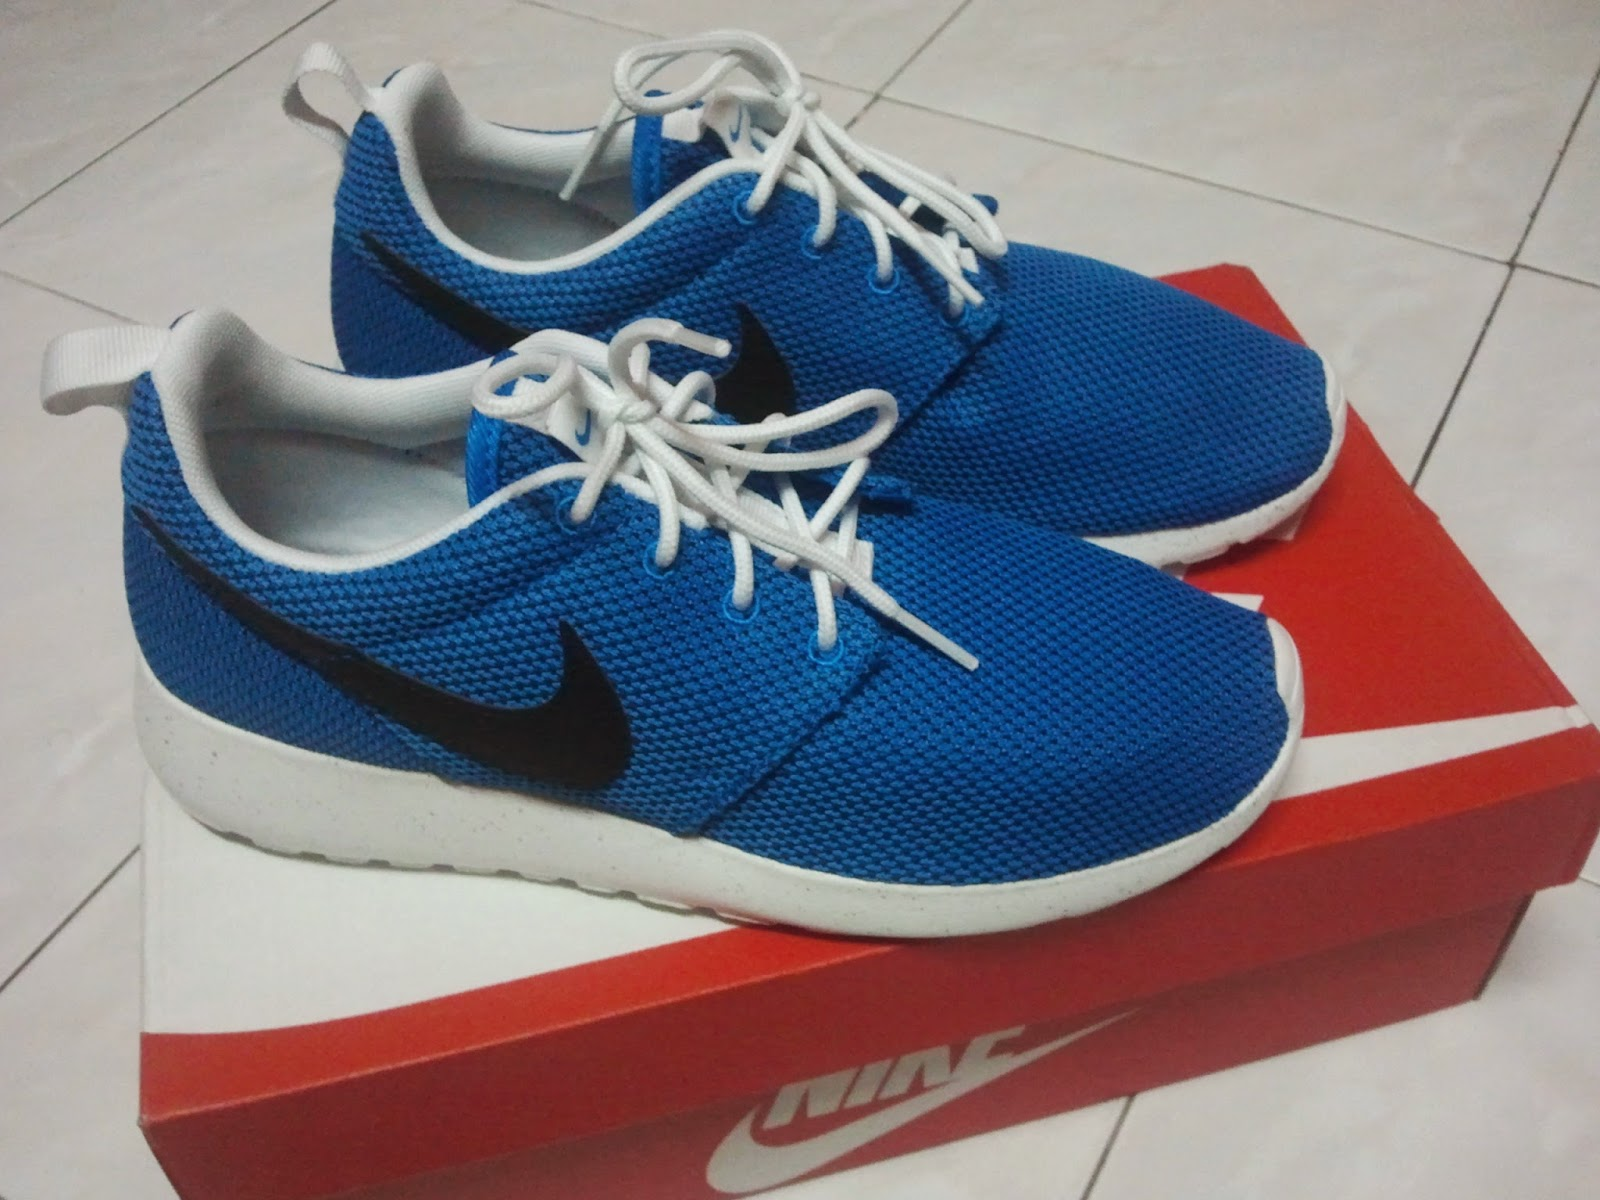 nike football shoes made in vietnam